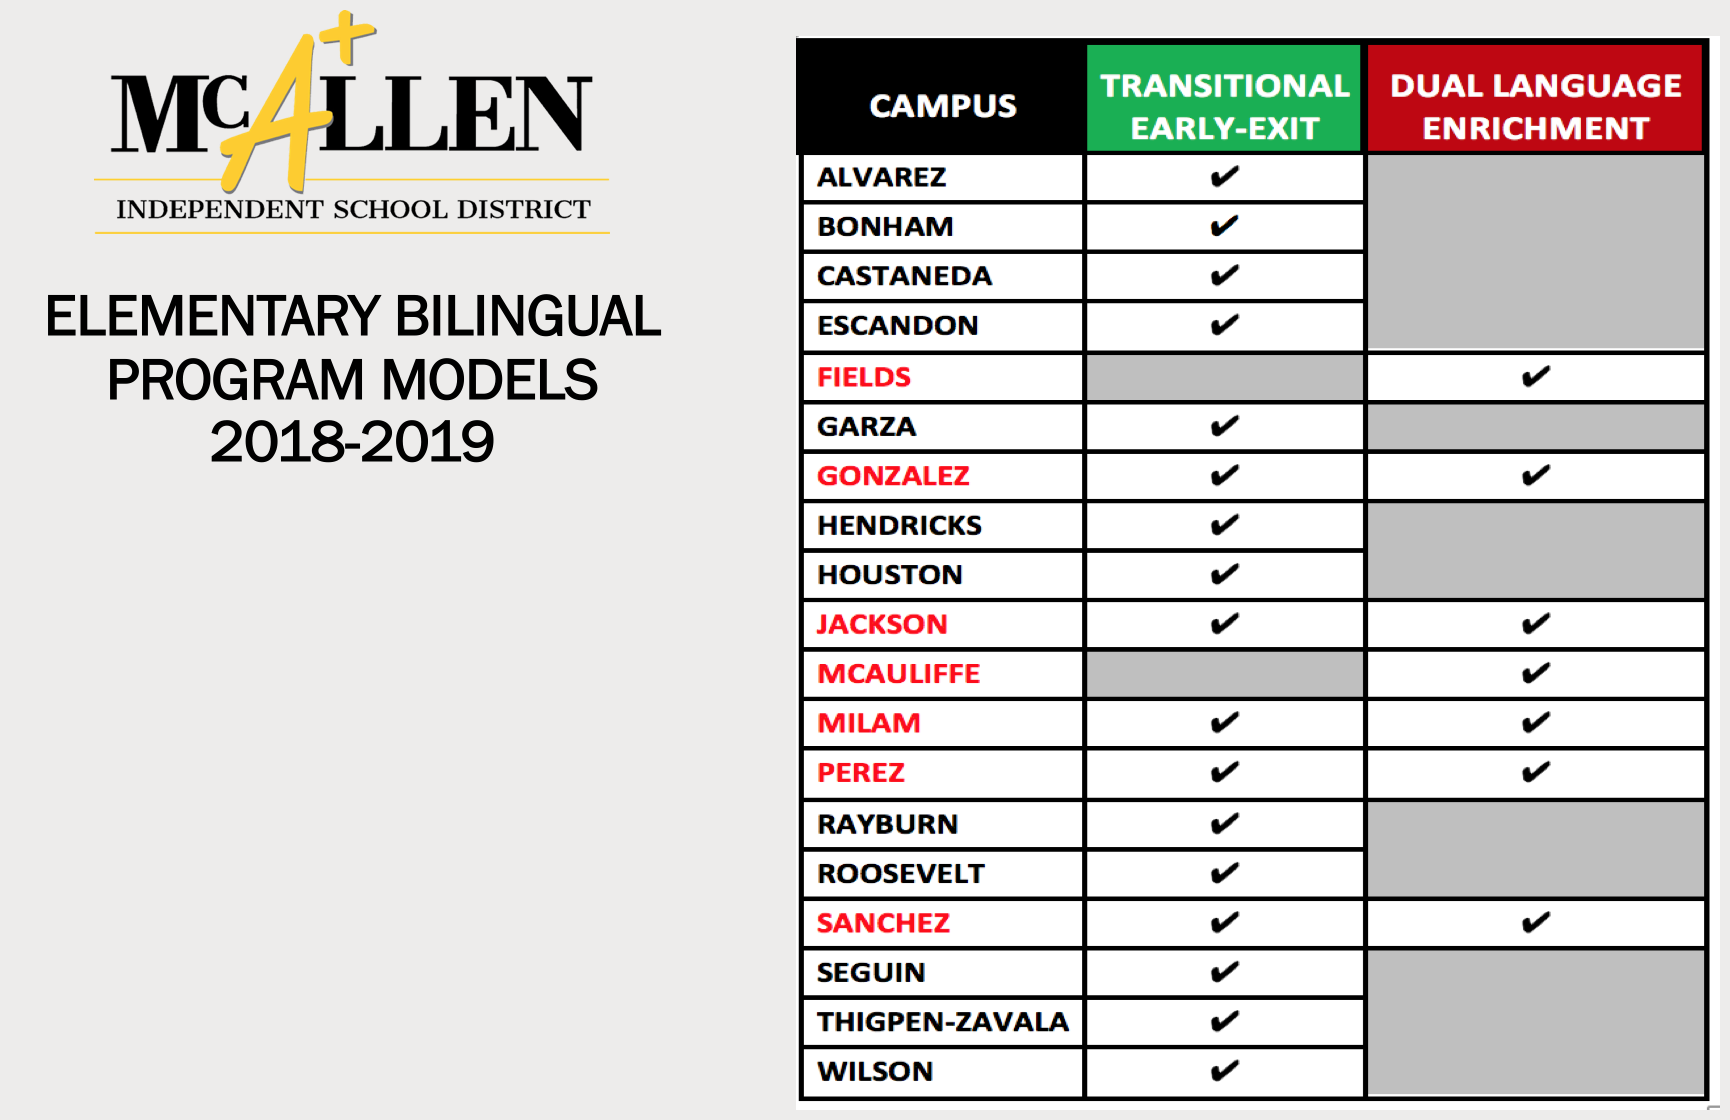 Bilingual Programs by Campus/Programas por Nivel